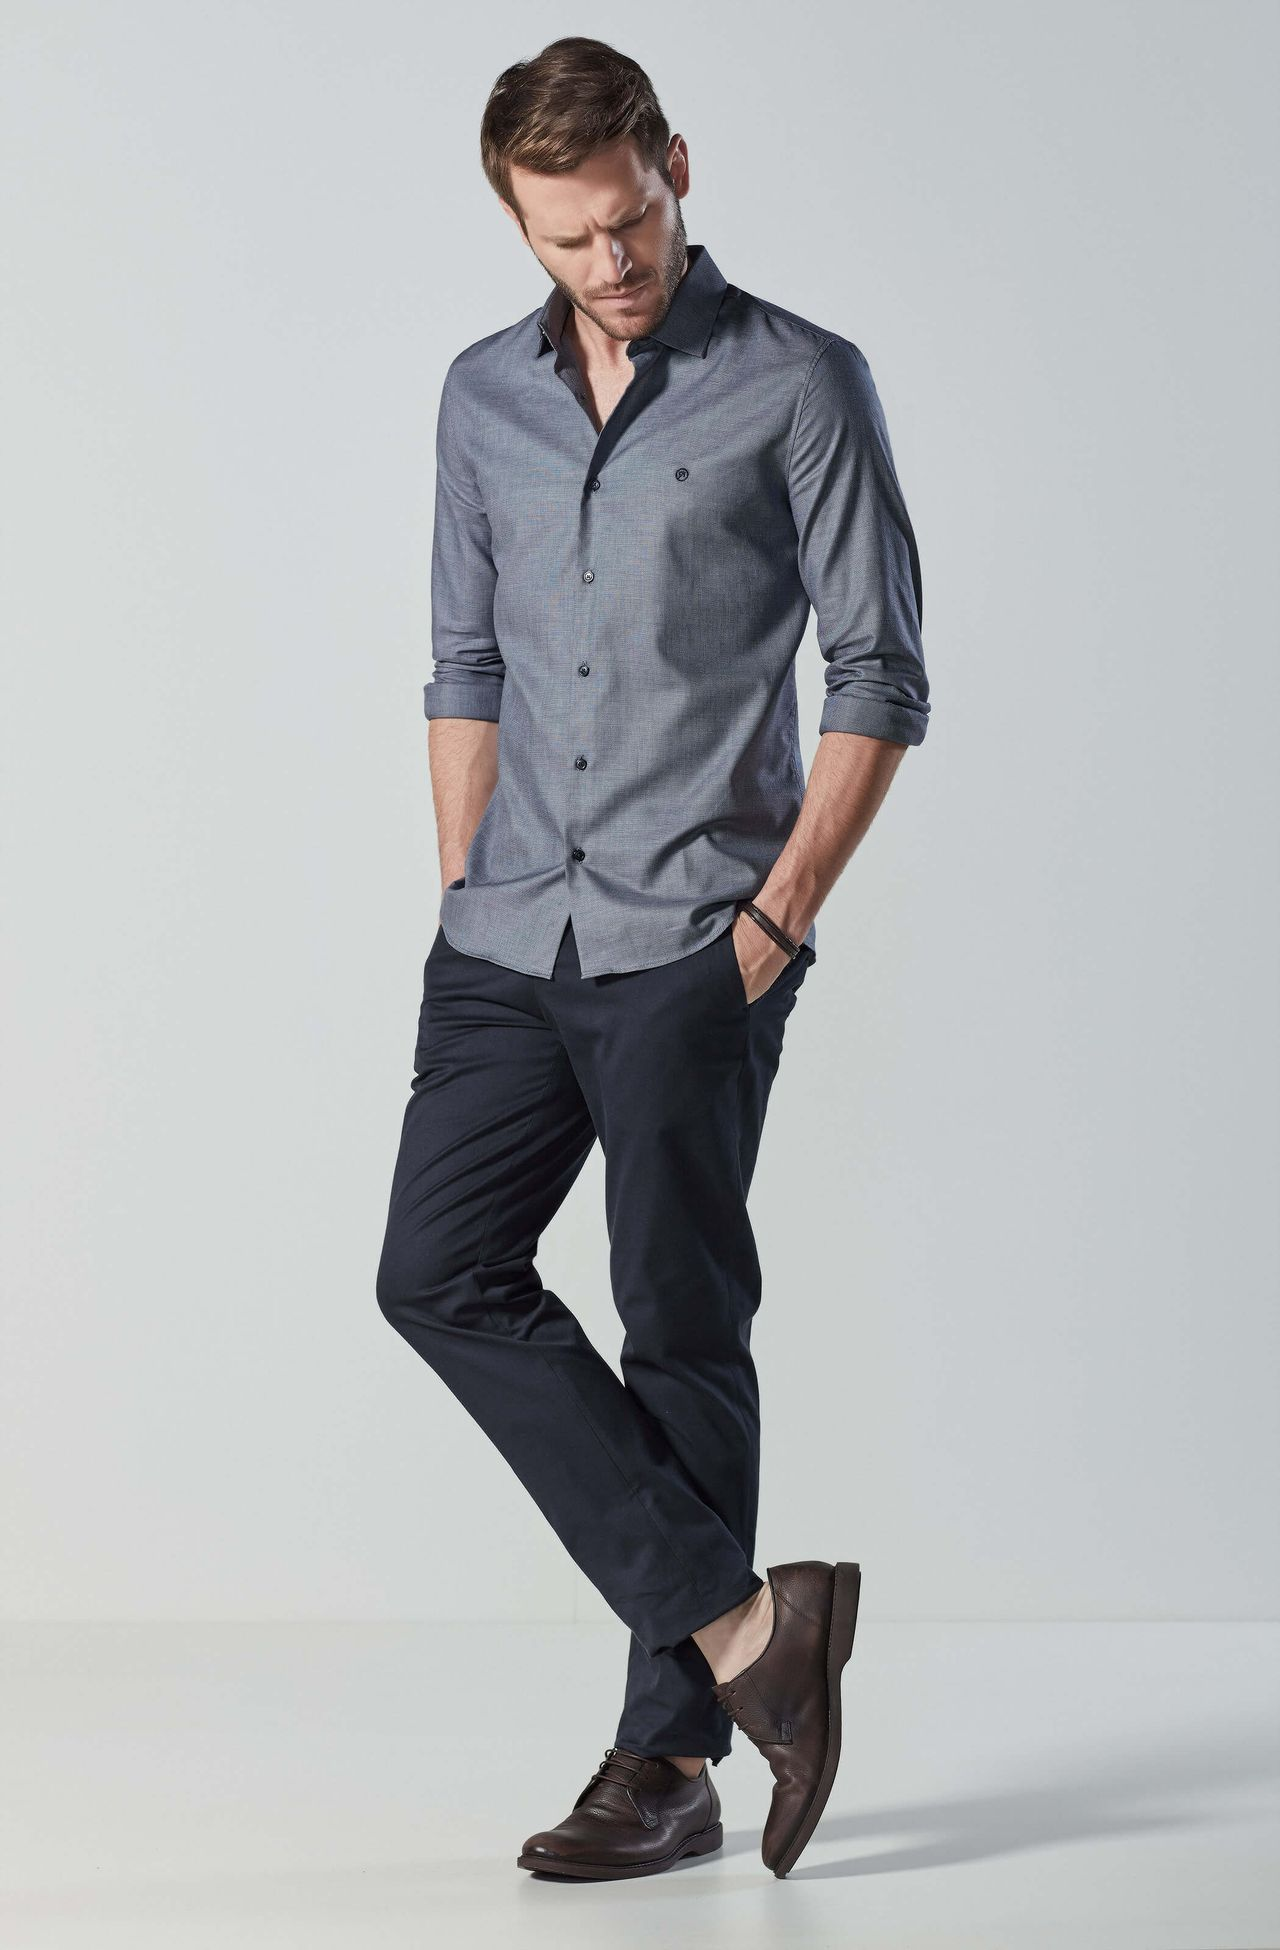 2601XWZ41780_599_2-CAMISA-WORK-SLIM-FIT-ML-MAQUINETADA